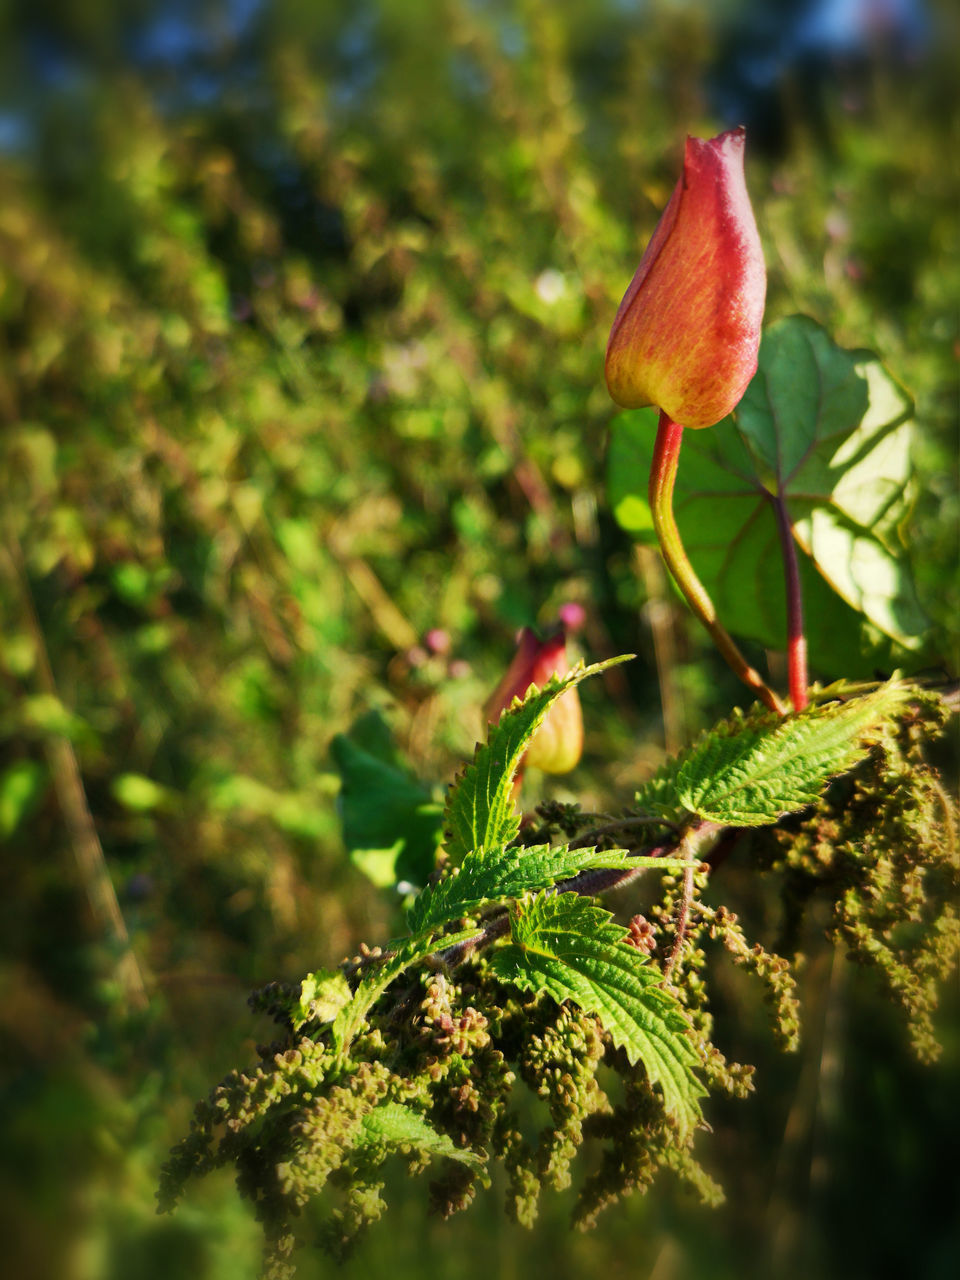 plant, growth, beauty in nature, close-up, leaf, plant part, flower, green color, nature, fragility, vulnerability, selective focus, day, no people, flowering plant, beginnings, freshness, new life, focus on foreground, red, outdoors, flower head